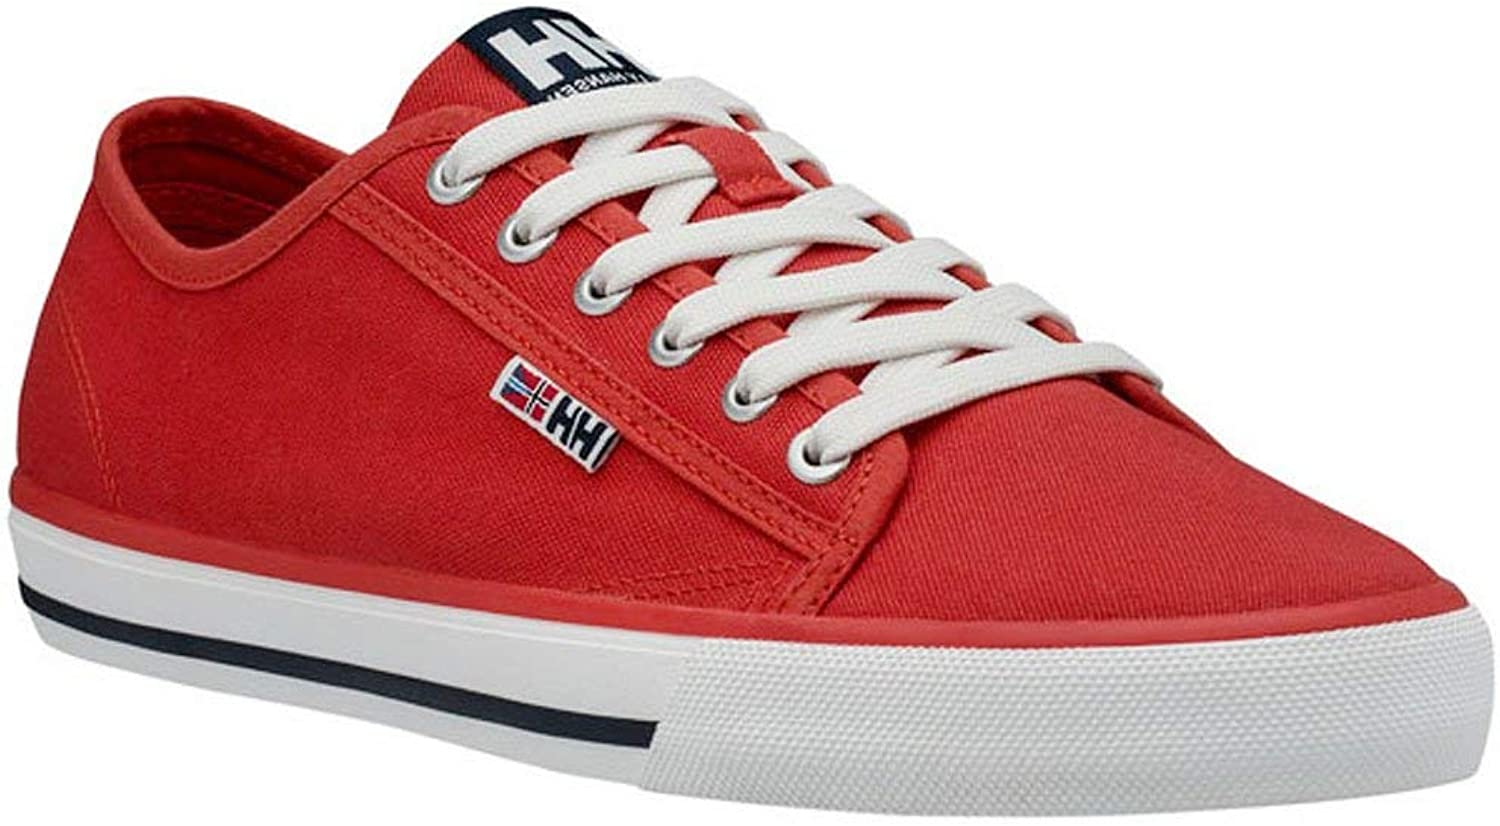 Helly Hansen Fjord Canvas shoes V2 11465-216